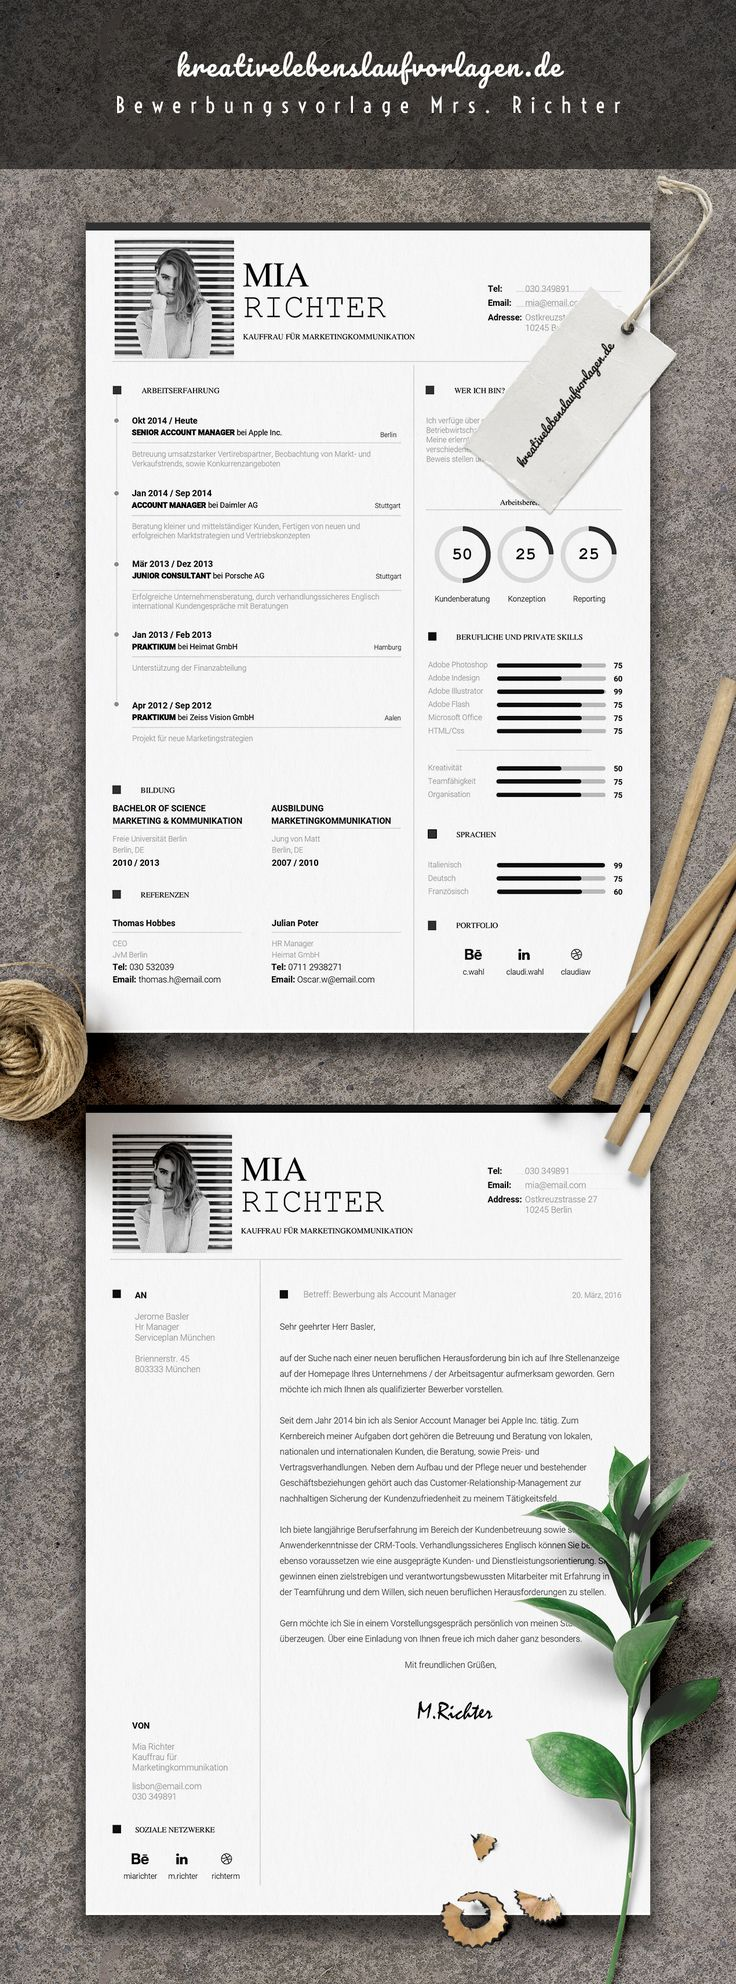 1483 best Резюме images on Pinterest | Cv template, Resume templates ...